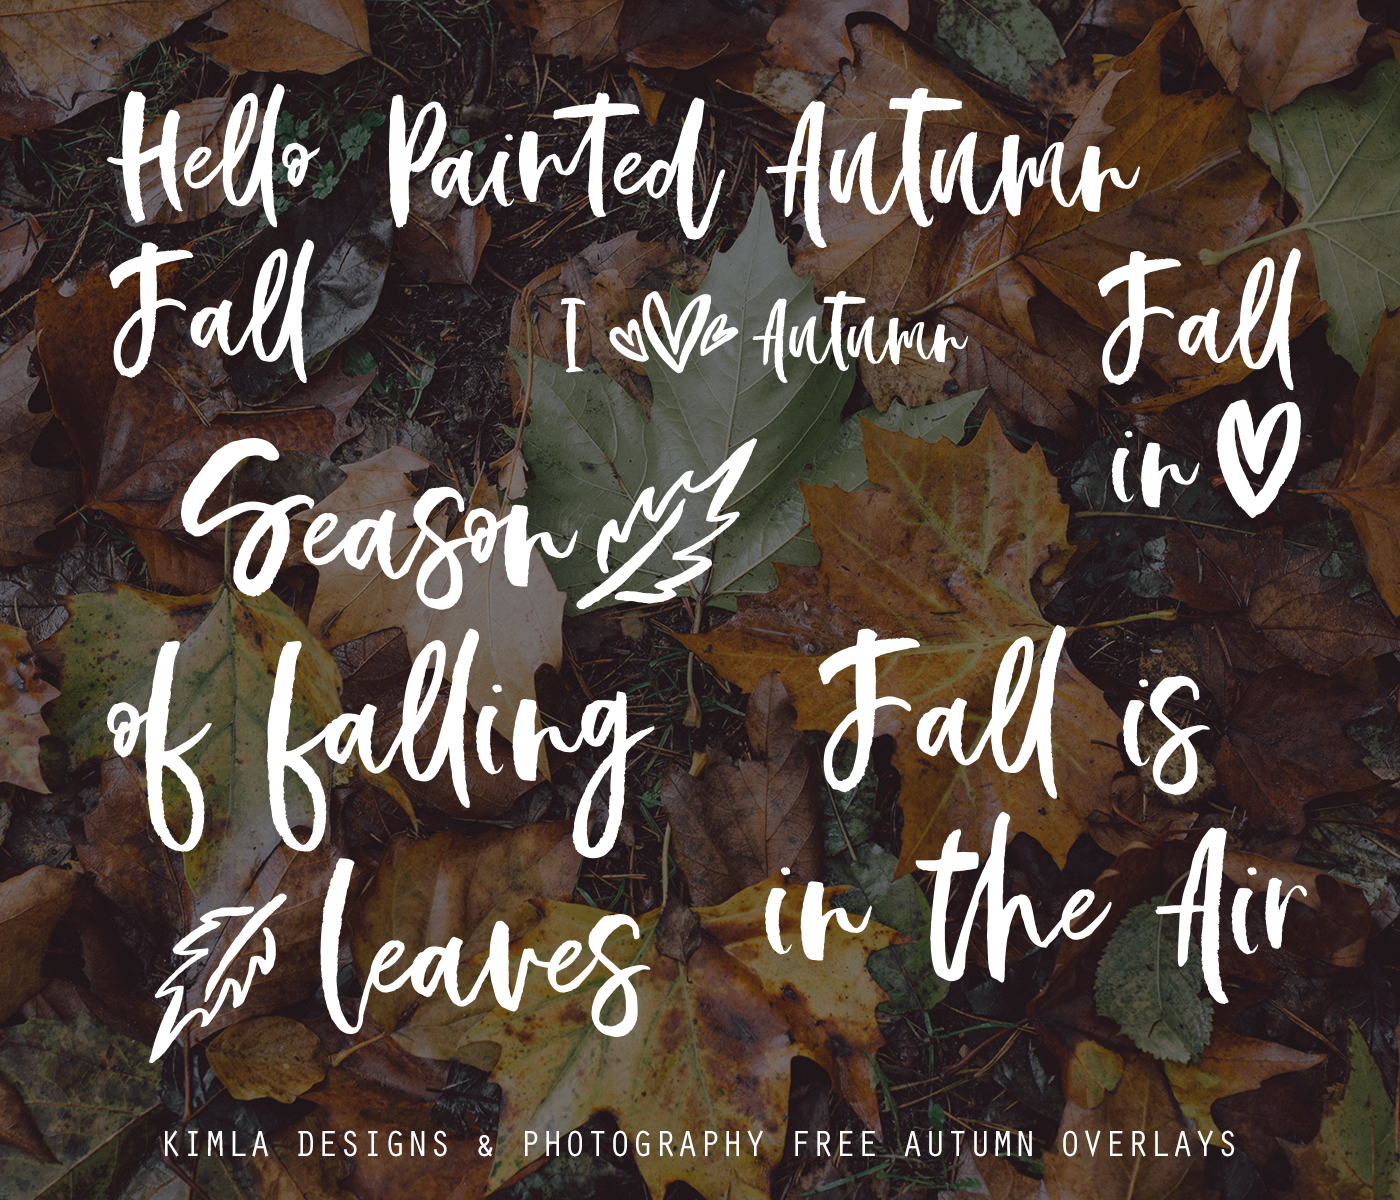 Free Autumn Overlays for Photographers